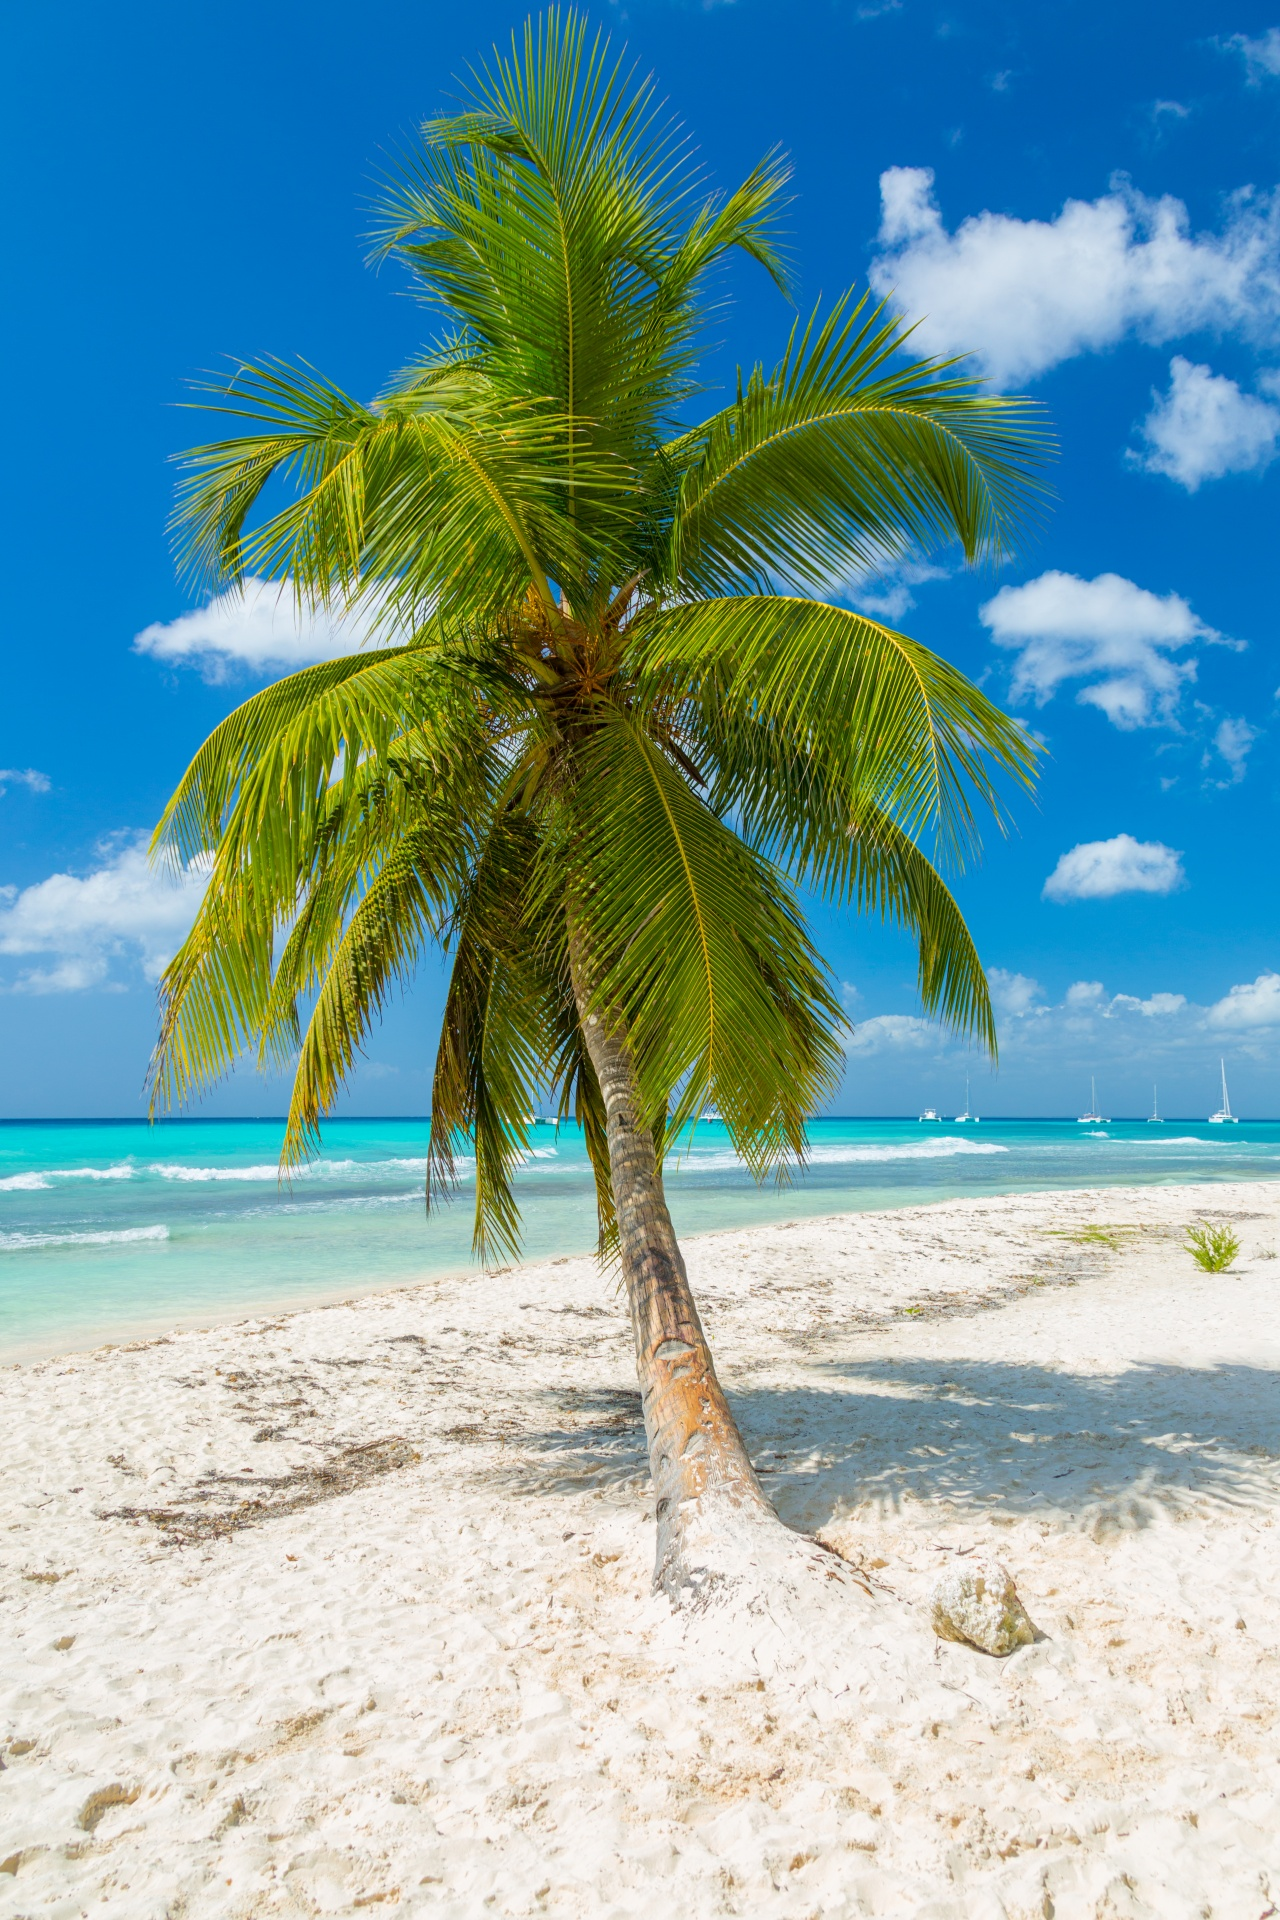 Tropical Palm Trees Free Stock Photo - Public Domain Pictures